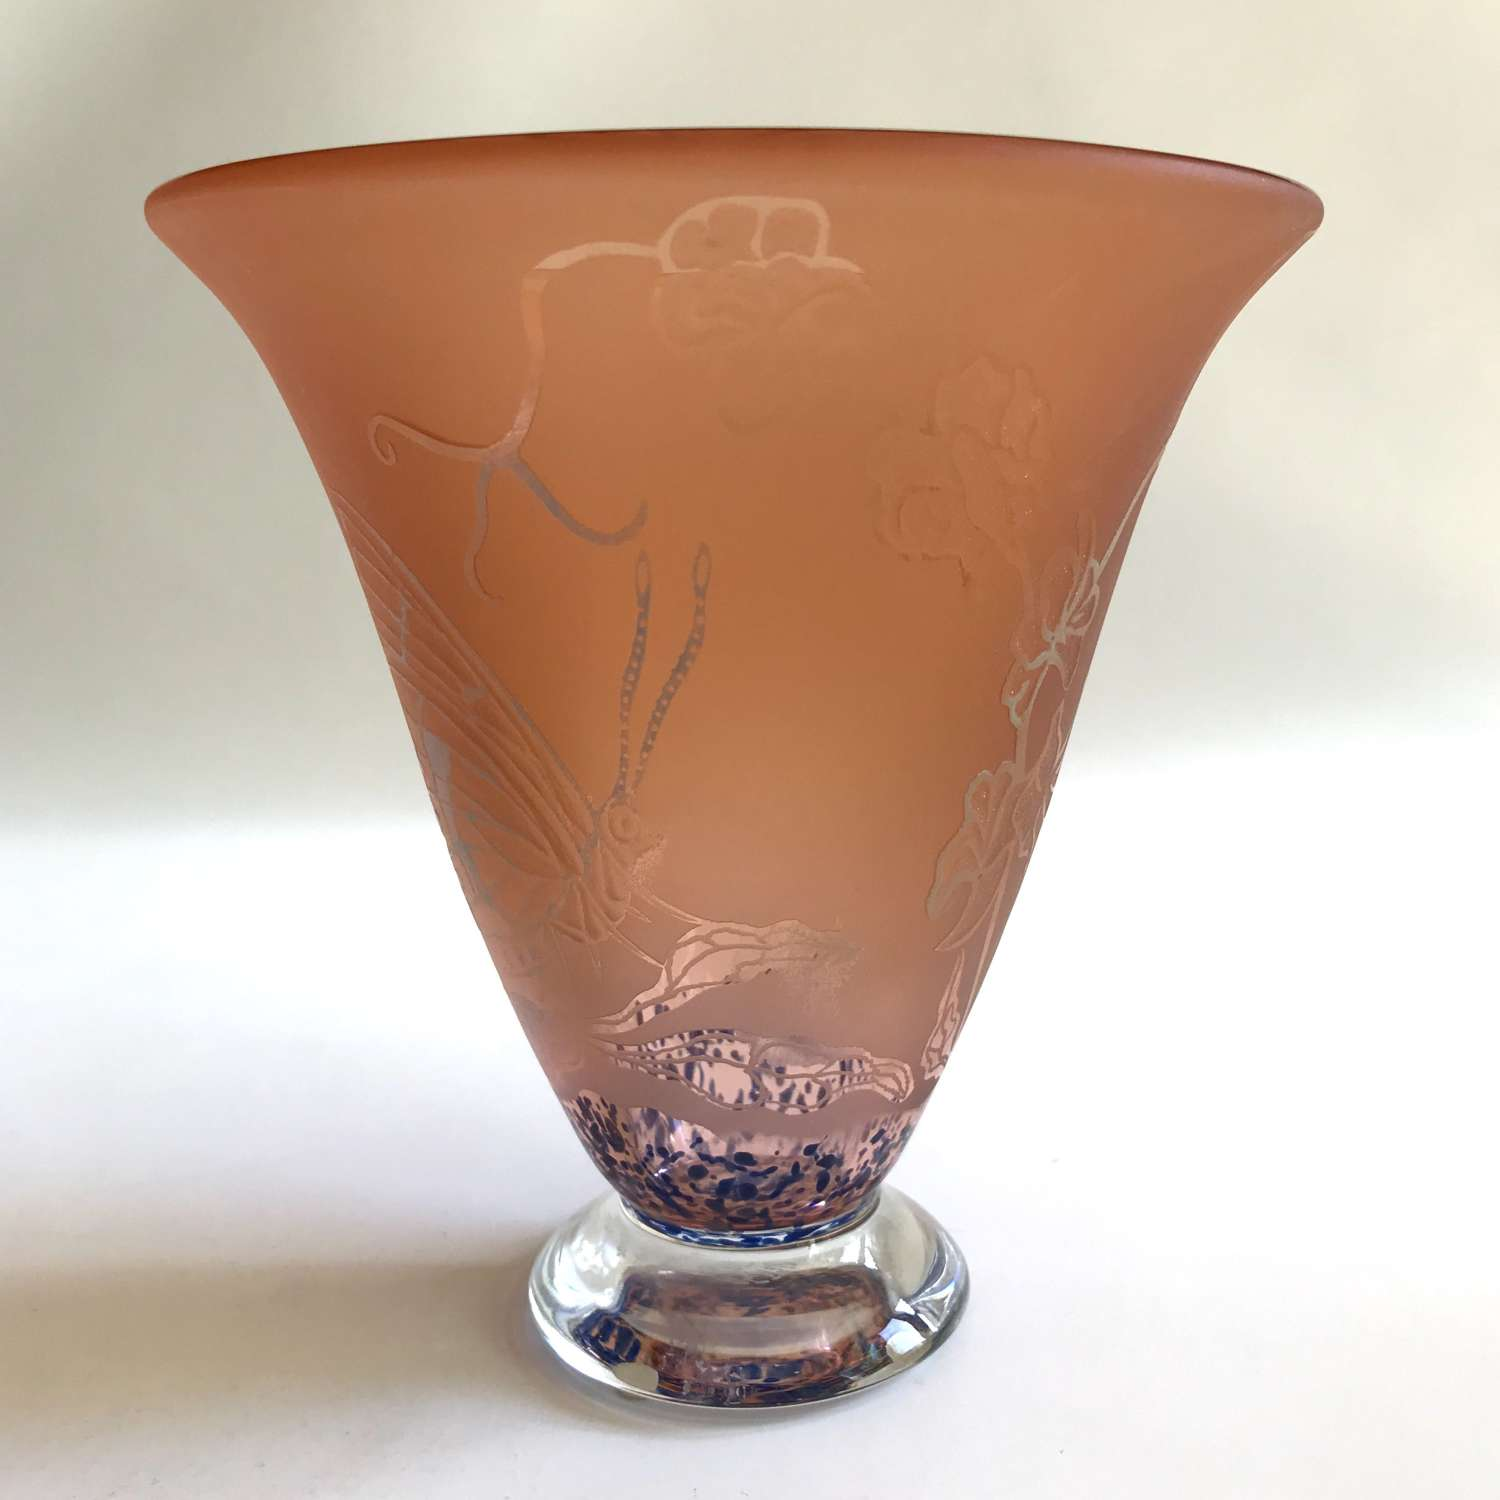 Unique vase by Astrid Gate for Johansfors Sweden 1996